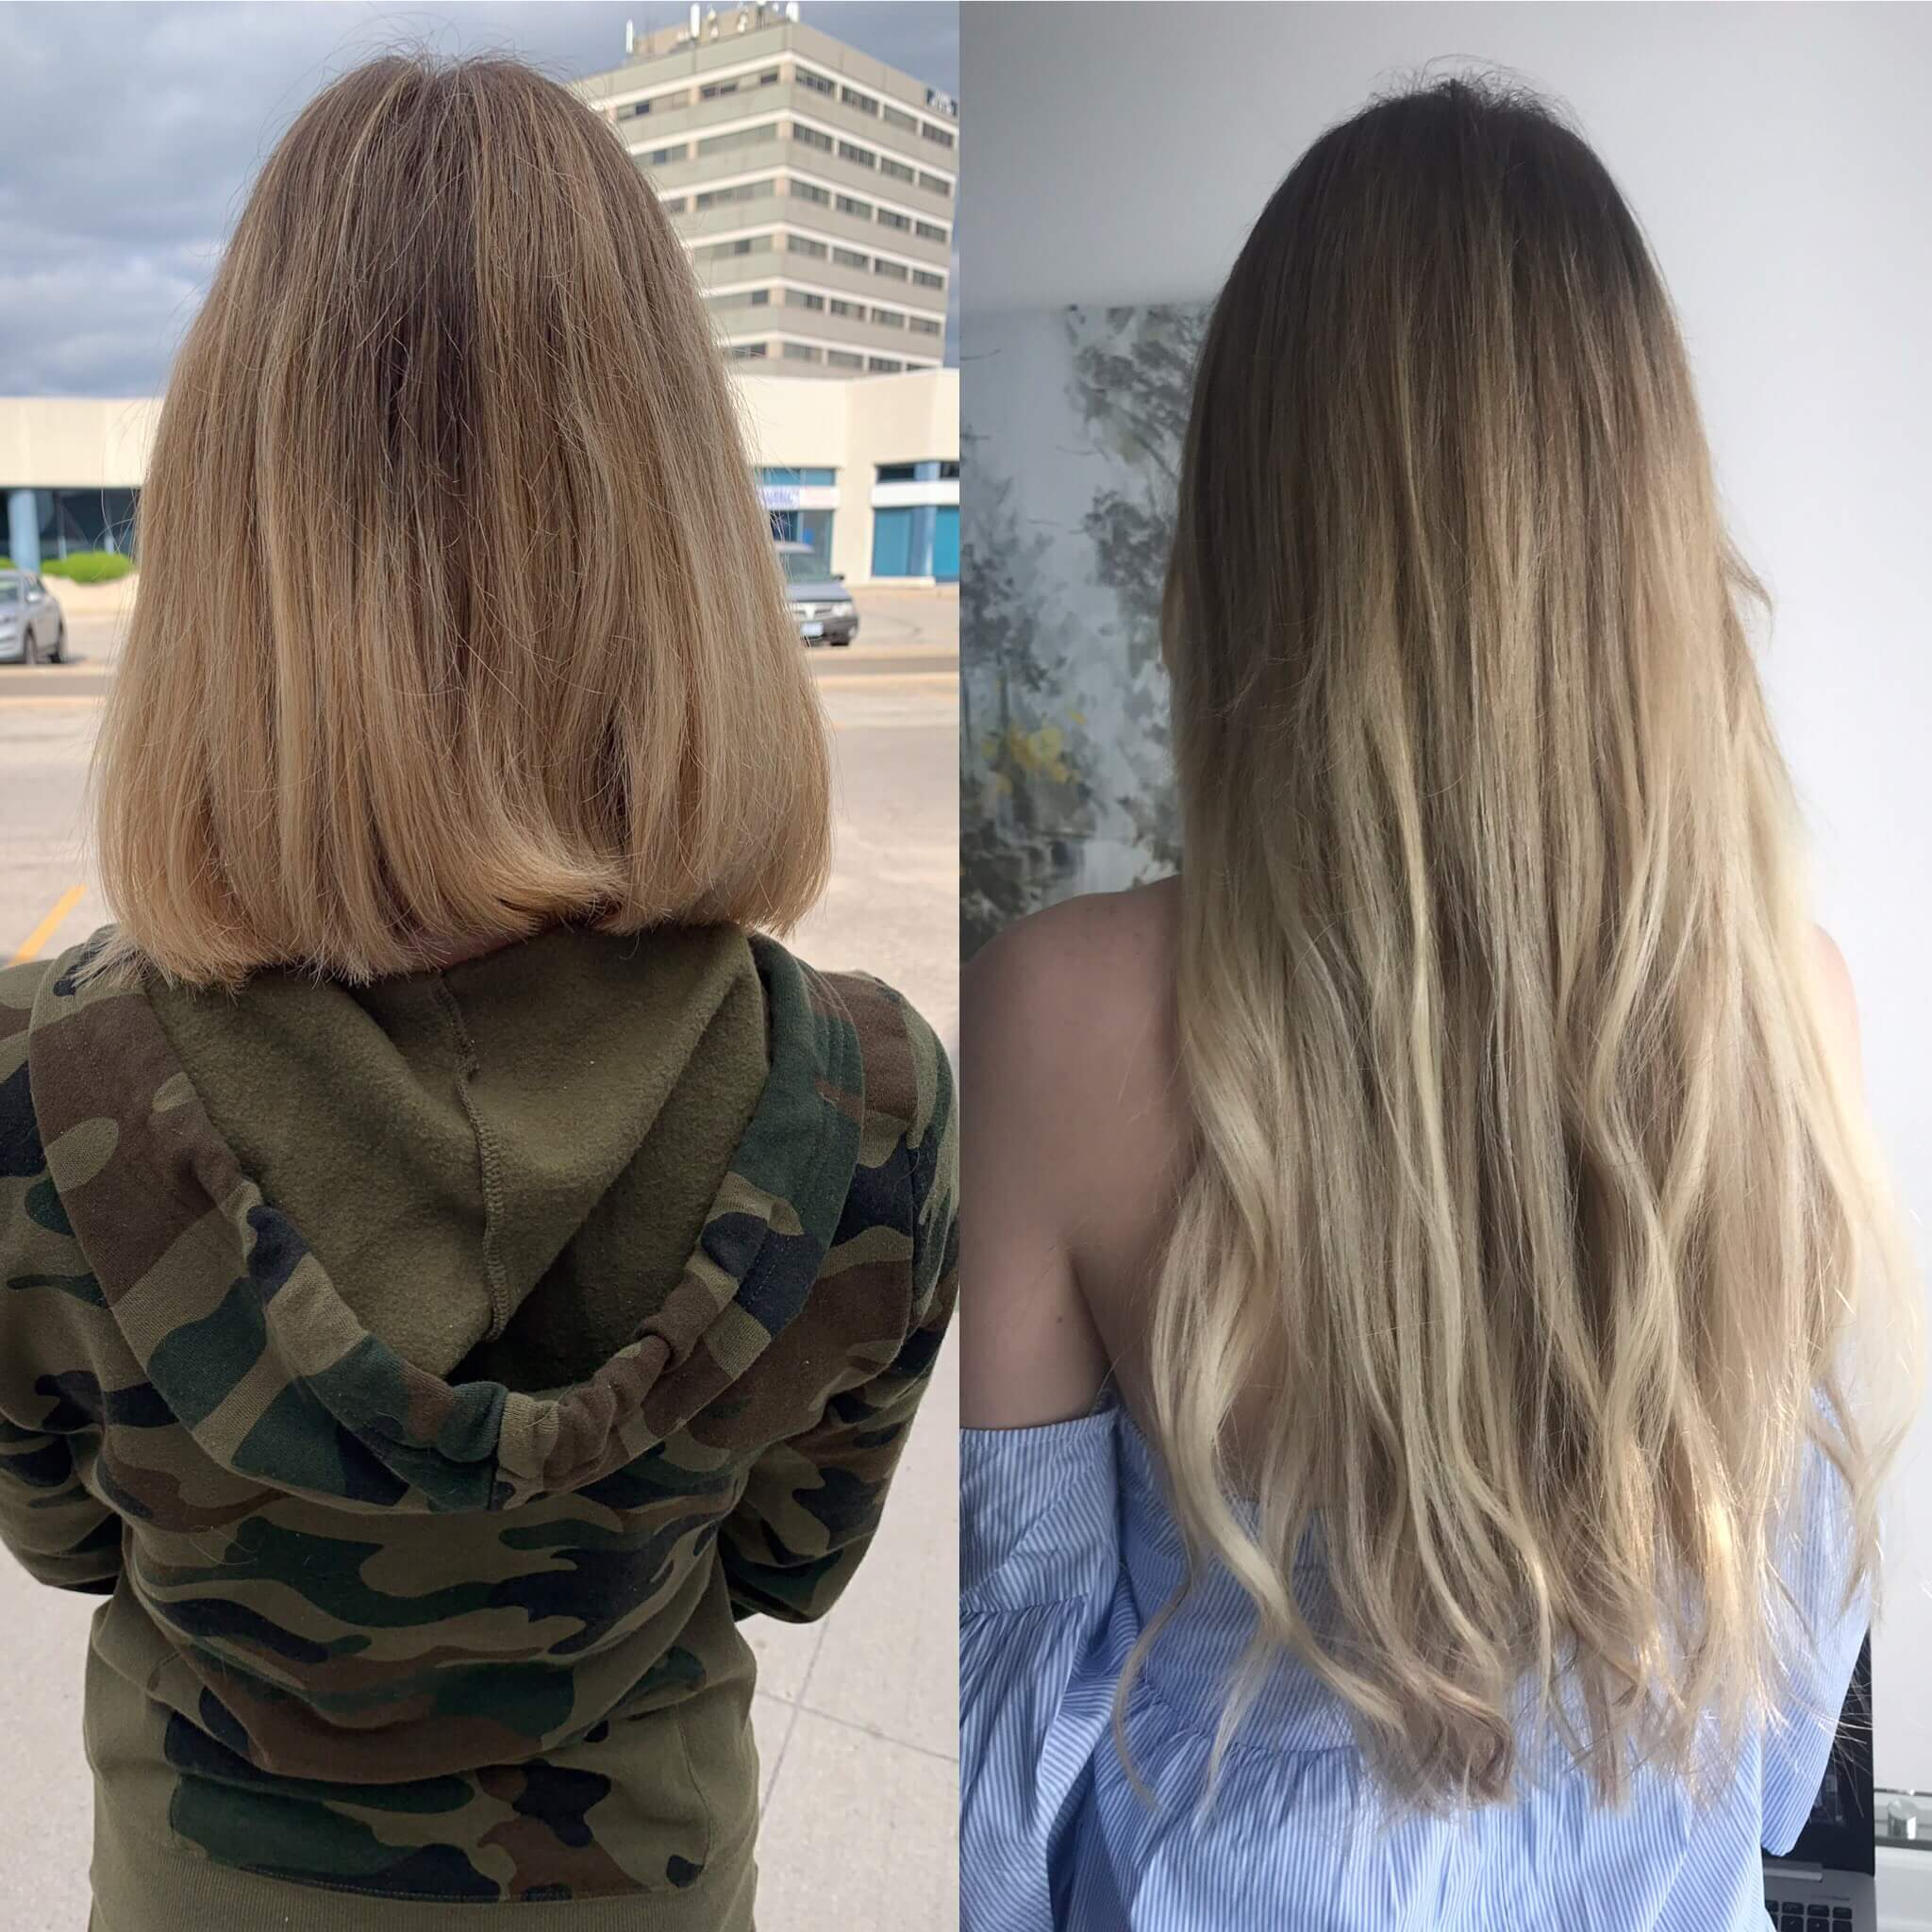 Hot Fusion Hair Extensions Example Before and After - 1